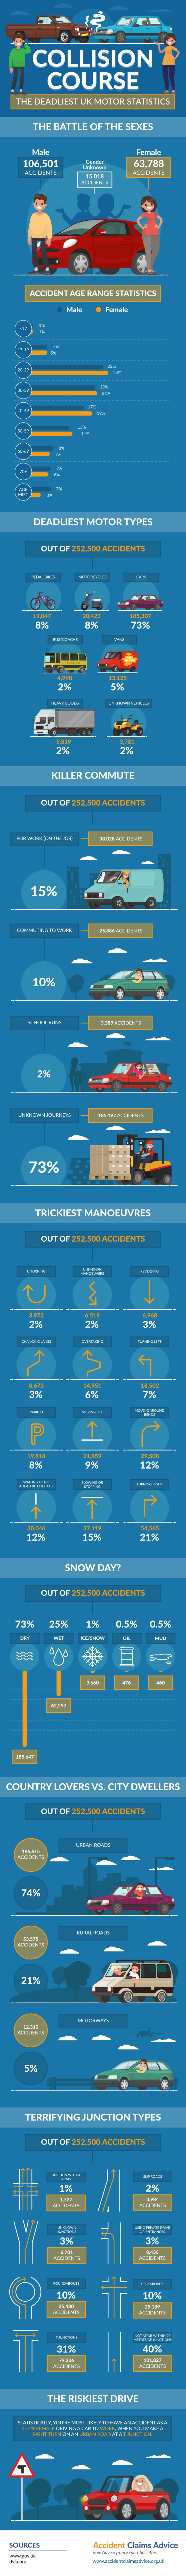 Deadly UK Road Accident Stats